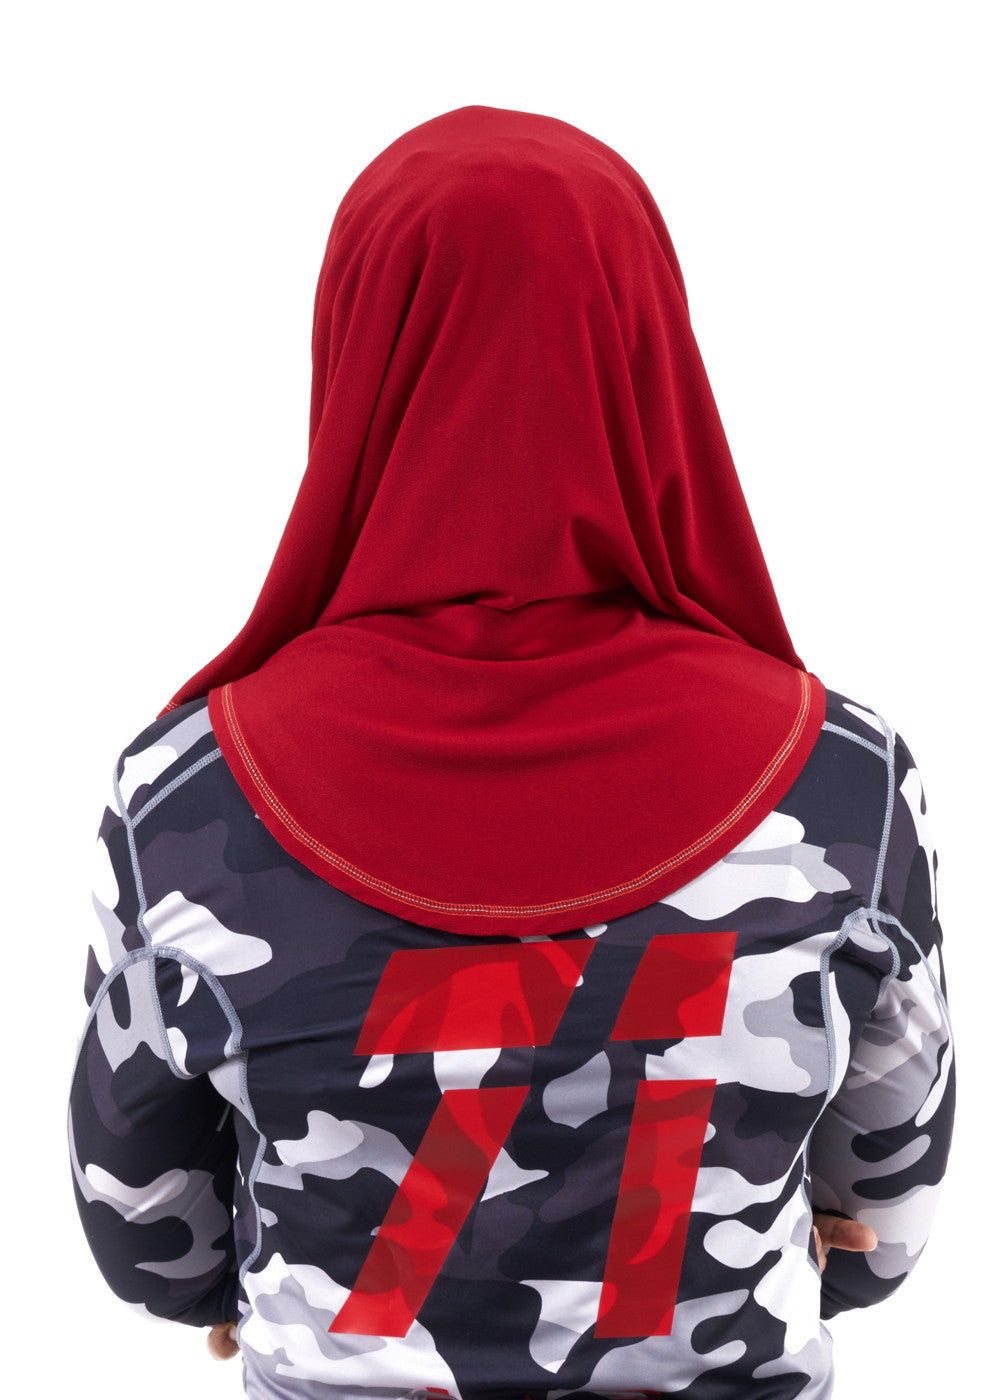 Sporty Hijab Cherry Pop no Awning